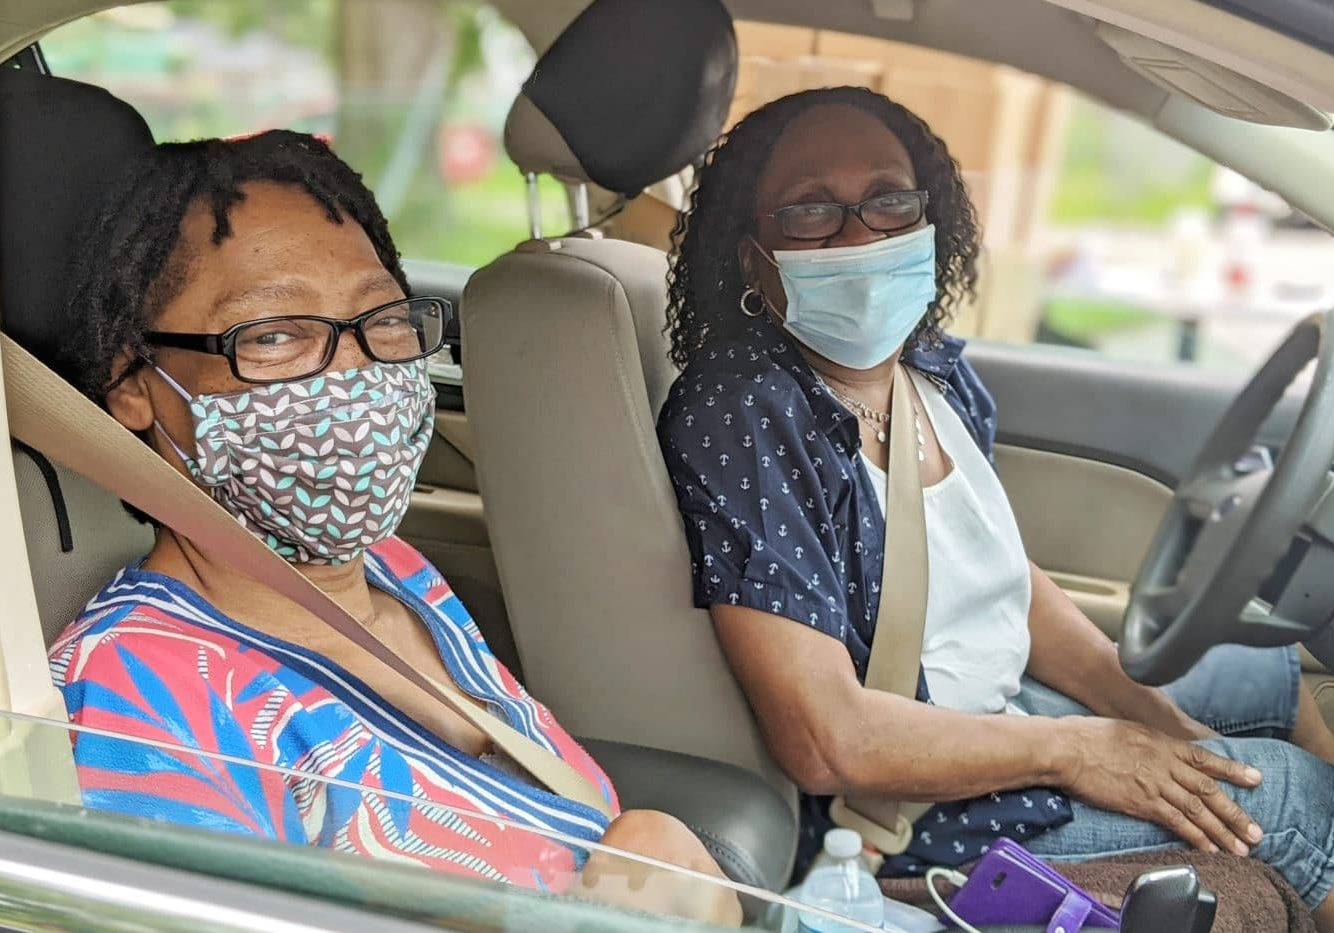 Francine (patterned mask) and Mae (plain blue mask) drove over to a food distribution at The SMART BOX together. Carpooling to pick up their Senior Food Boxes and other items was one more way to make their budgets stretch.  Both women have had to work harder to make ends meet the last few months. Mae now works at a hospital closer to home, but her pay is lower. Francine's brother has moved in temporarily because he lost his job due to COVID-19.   'That's an extra mouth to feed,' Francine says. 'So this is really coming in good for me.'   'It's definitely still important that we get healthy food,' Mae says.  'Healthy is important,' says Francine -- who recently received a kidney transplant. 'And I'm thankful, just thankful.'